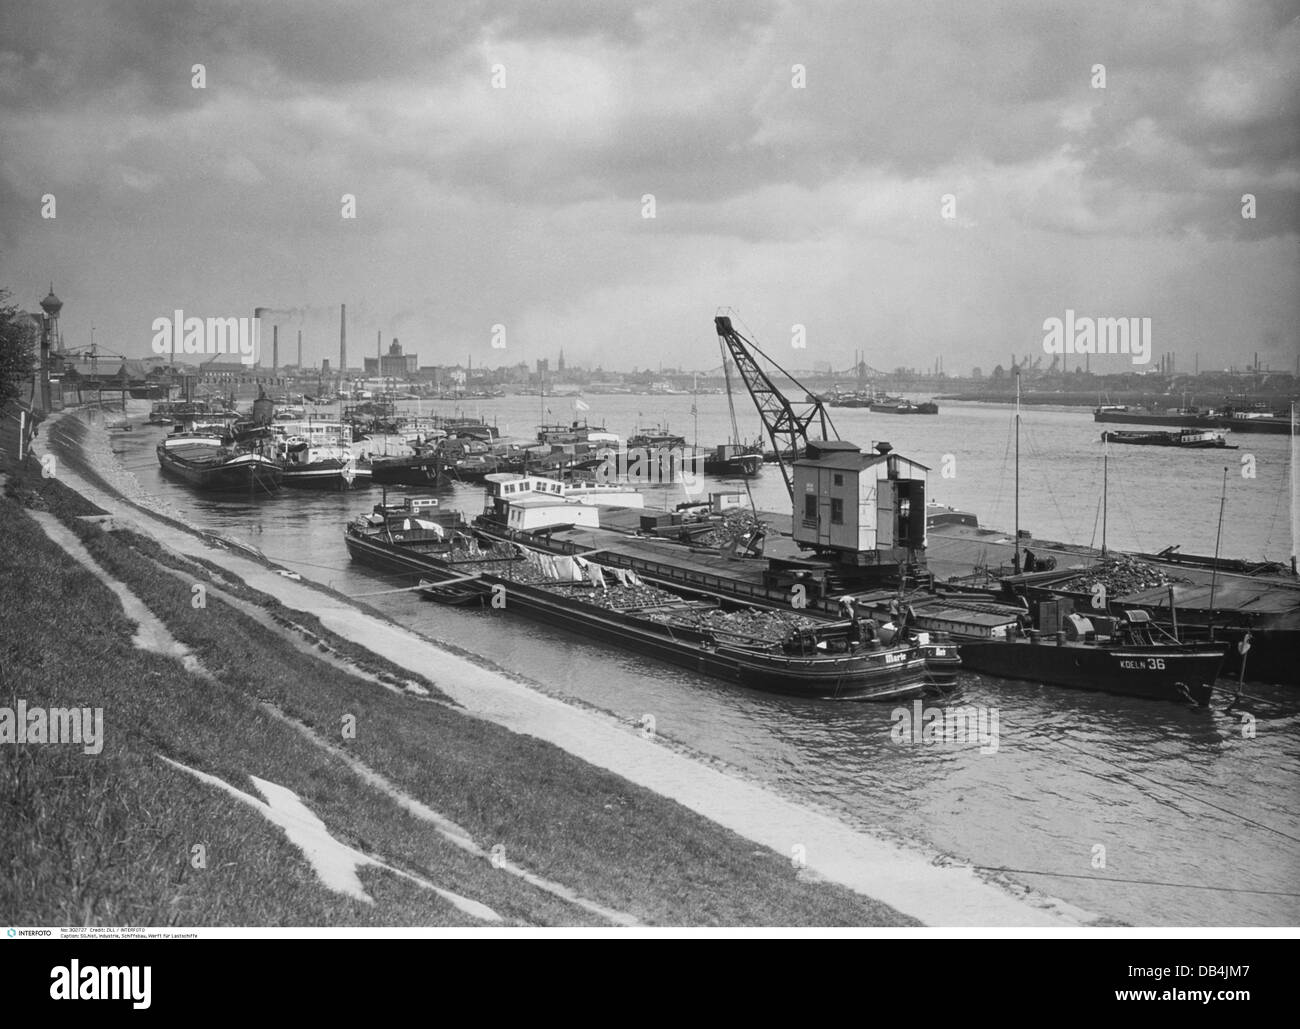 Cargo Ships Black And White Stock Photos Images Alamy Craft Wiring Diagram Industry Shipbuilding Dockyard For Homberg On The Rhine Germany